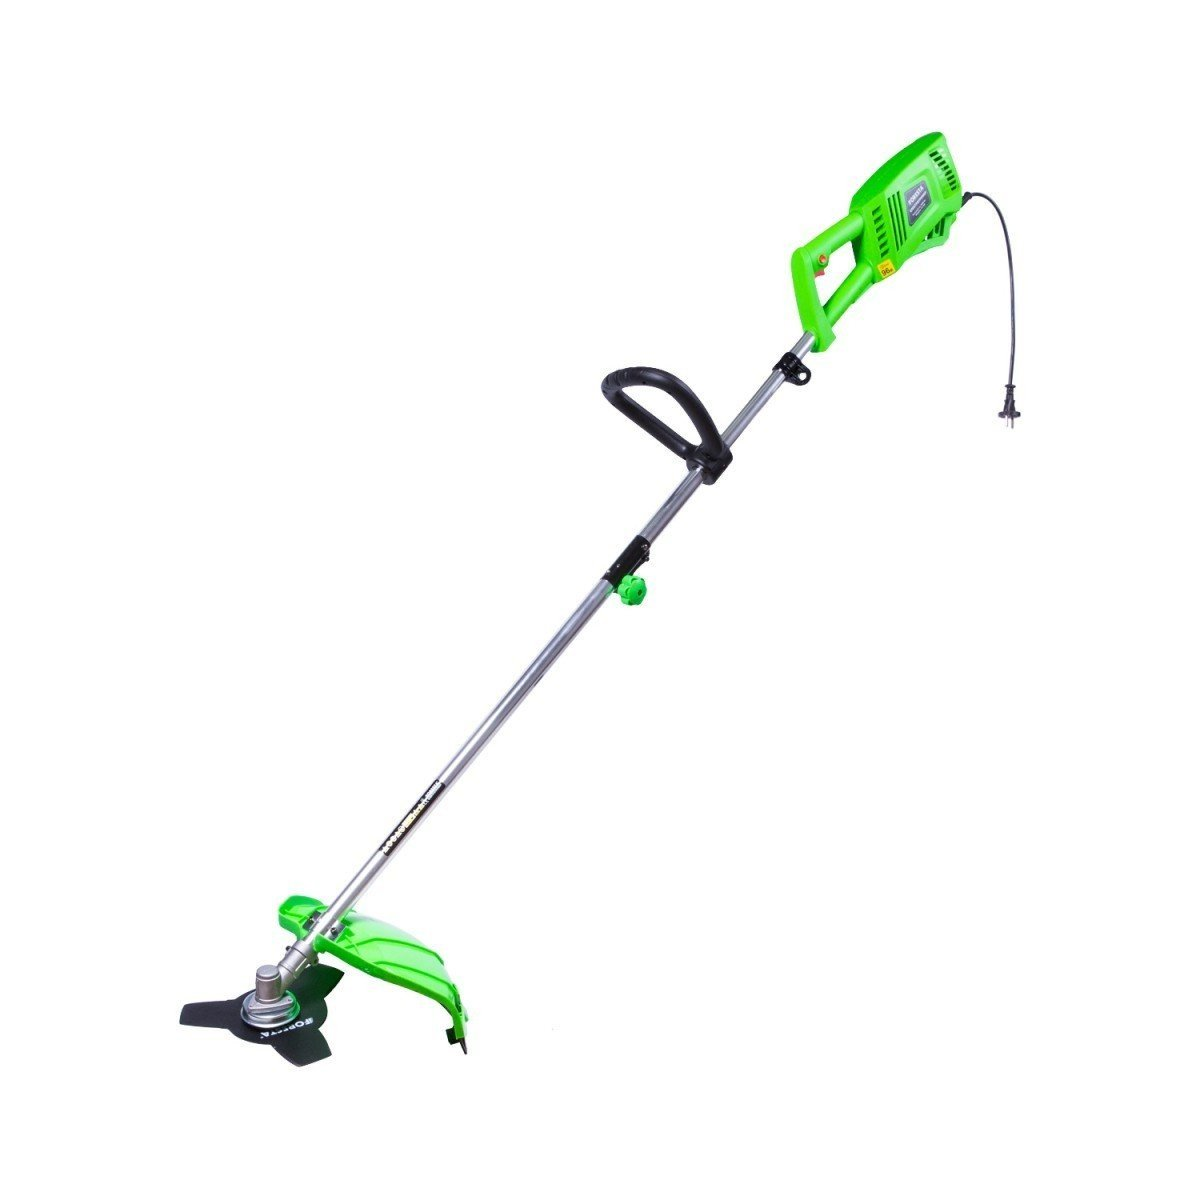 The Best Garden Trimmer For You